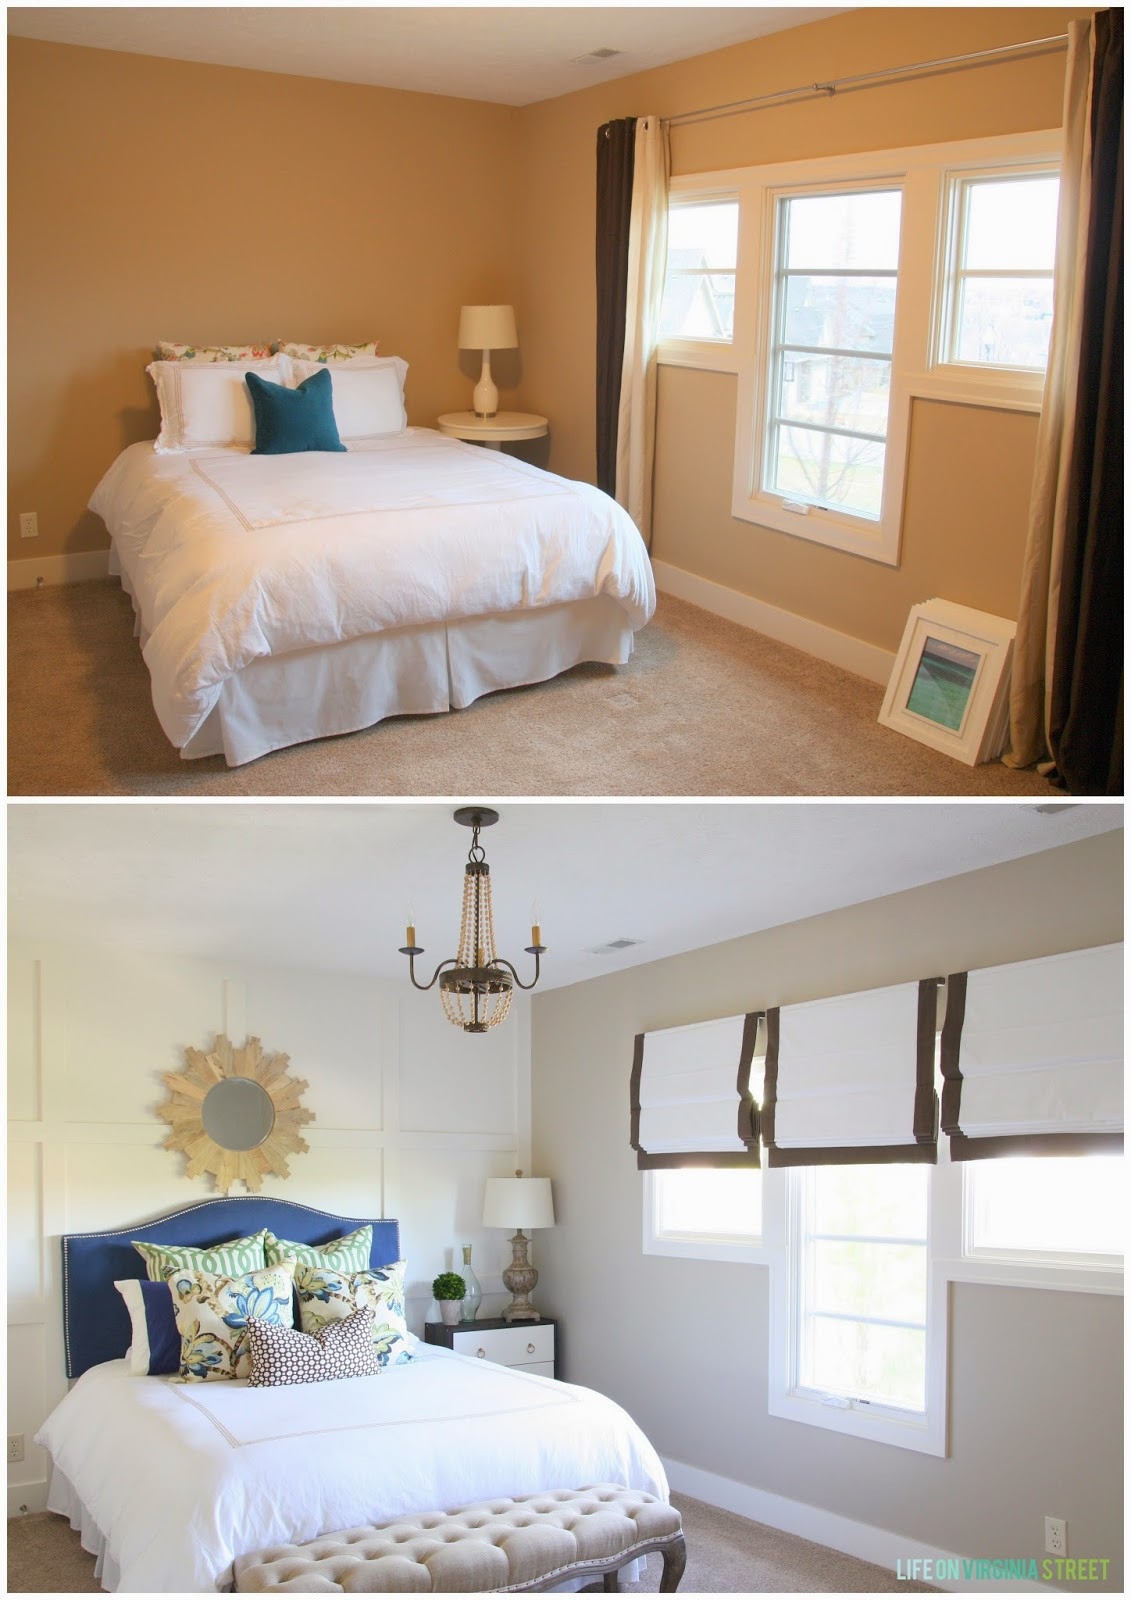 10 Beautiful Room Makeovers Life On Virginia Street